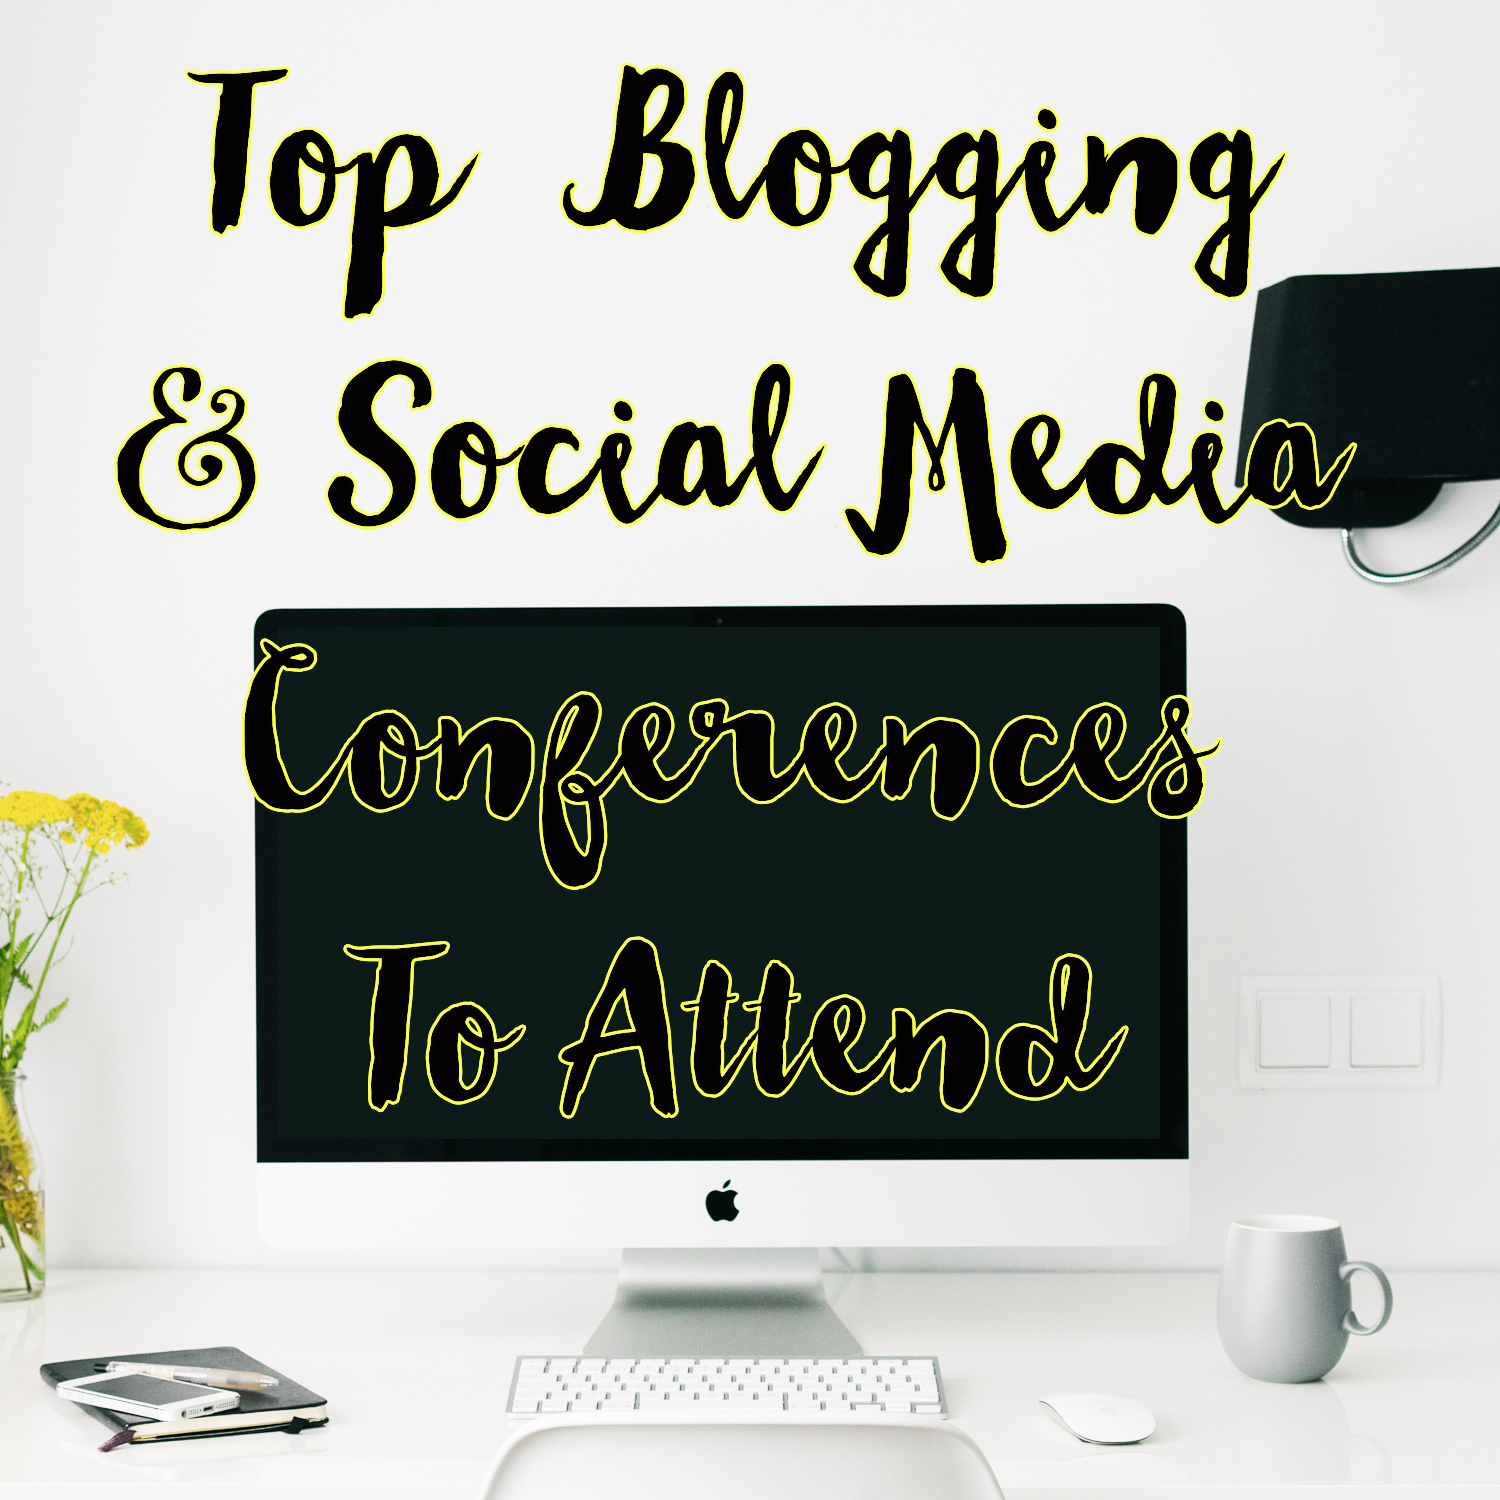 Social Media Conferences And Blogging Networks   Jul 2, 2015